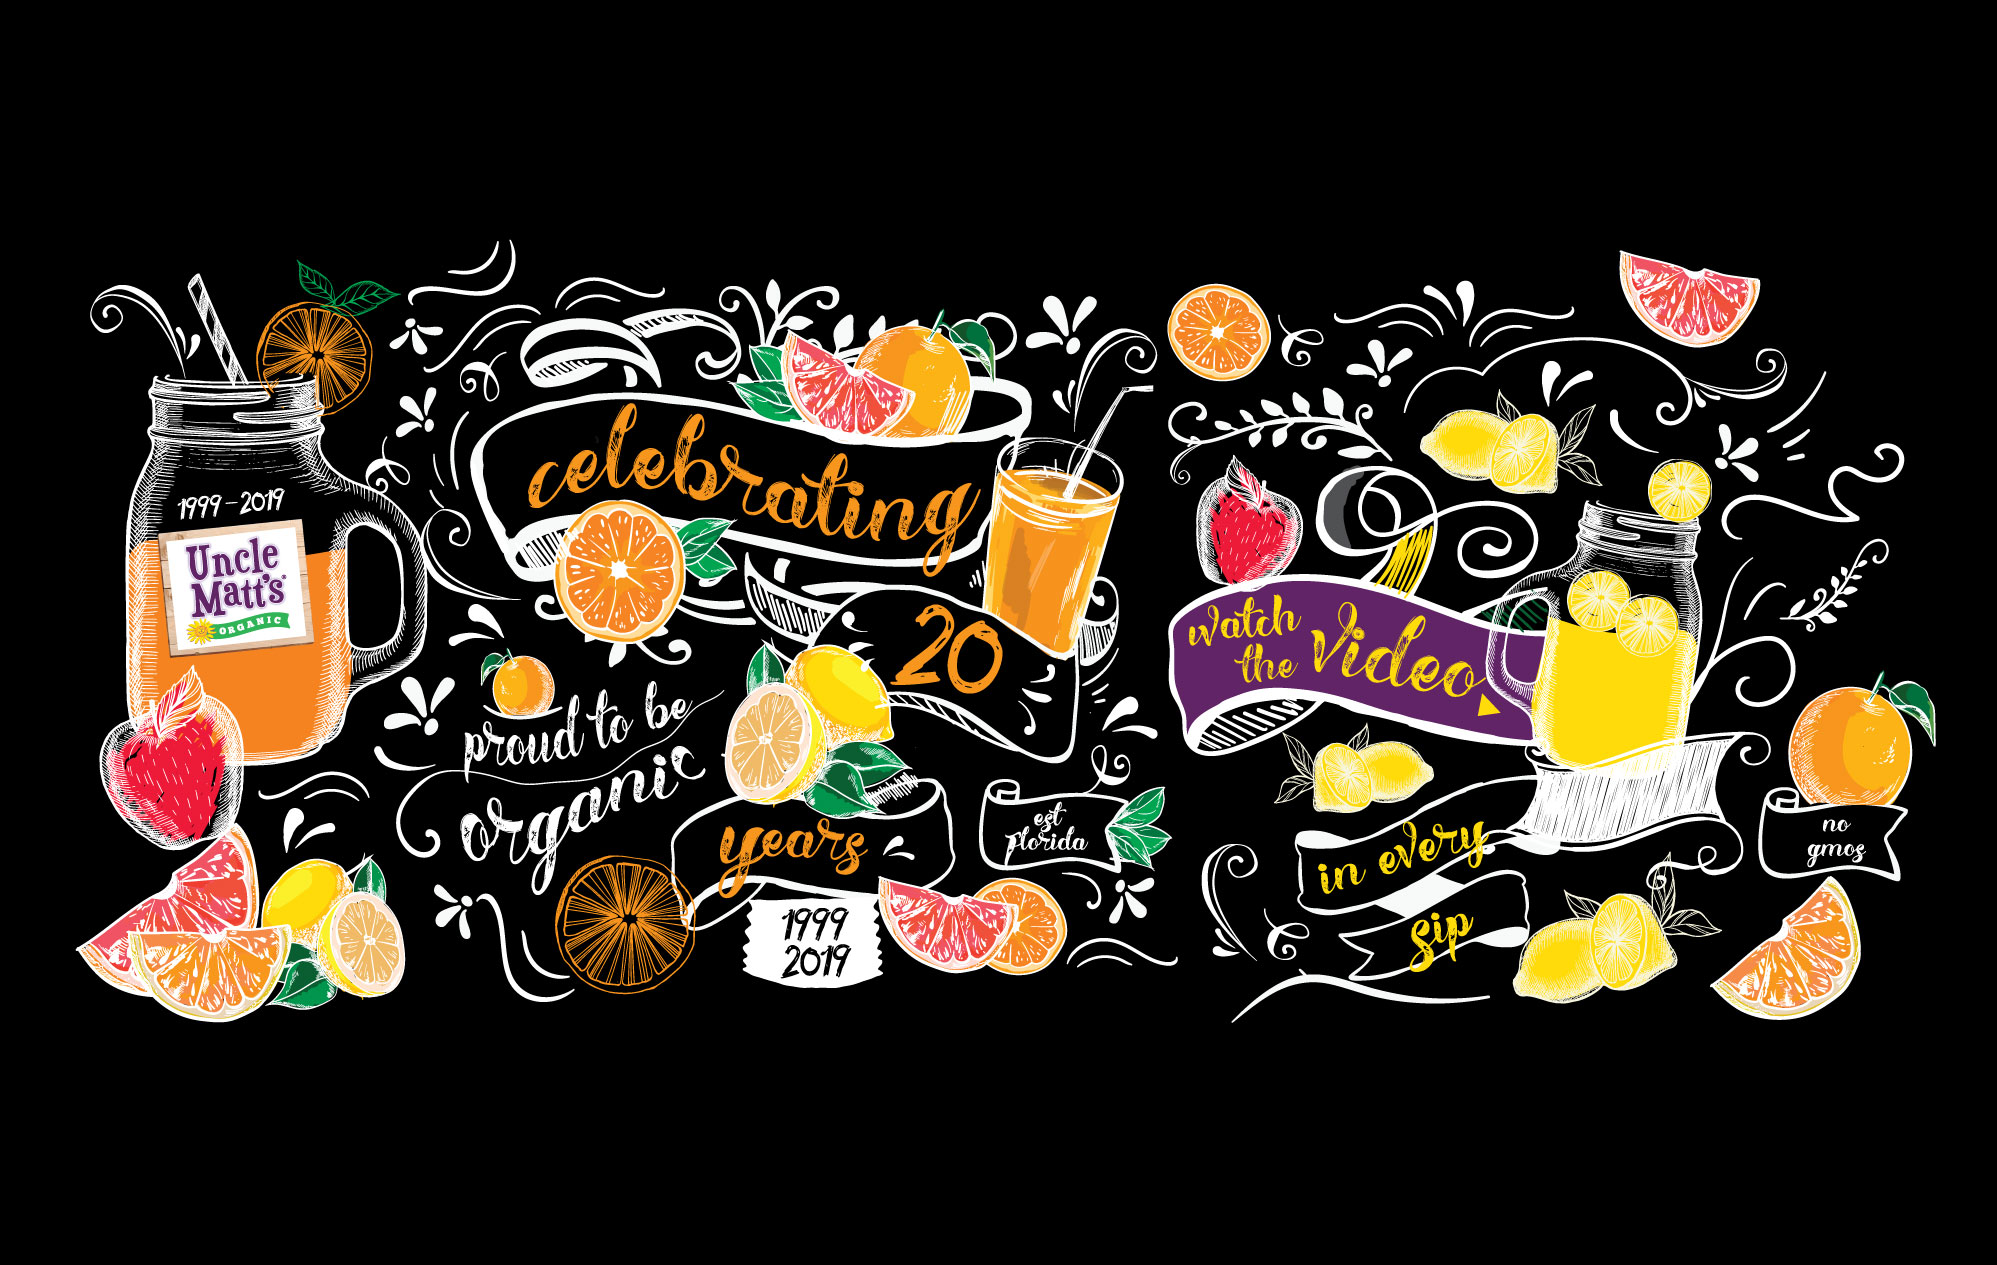 Uncle Matt's Organic celebrates our 20th anniversary of growing organic